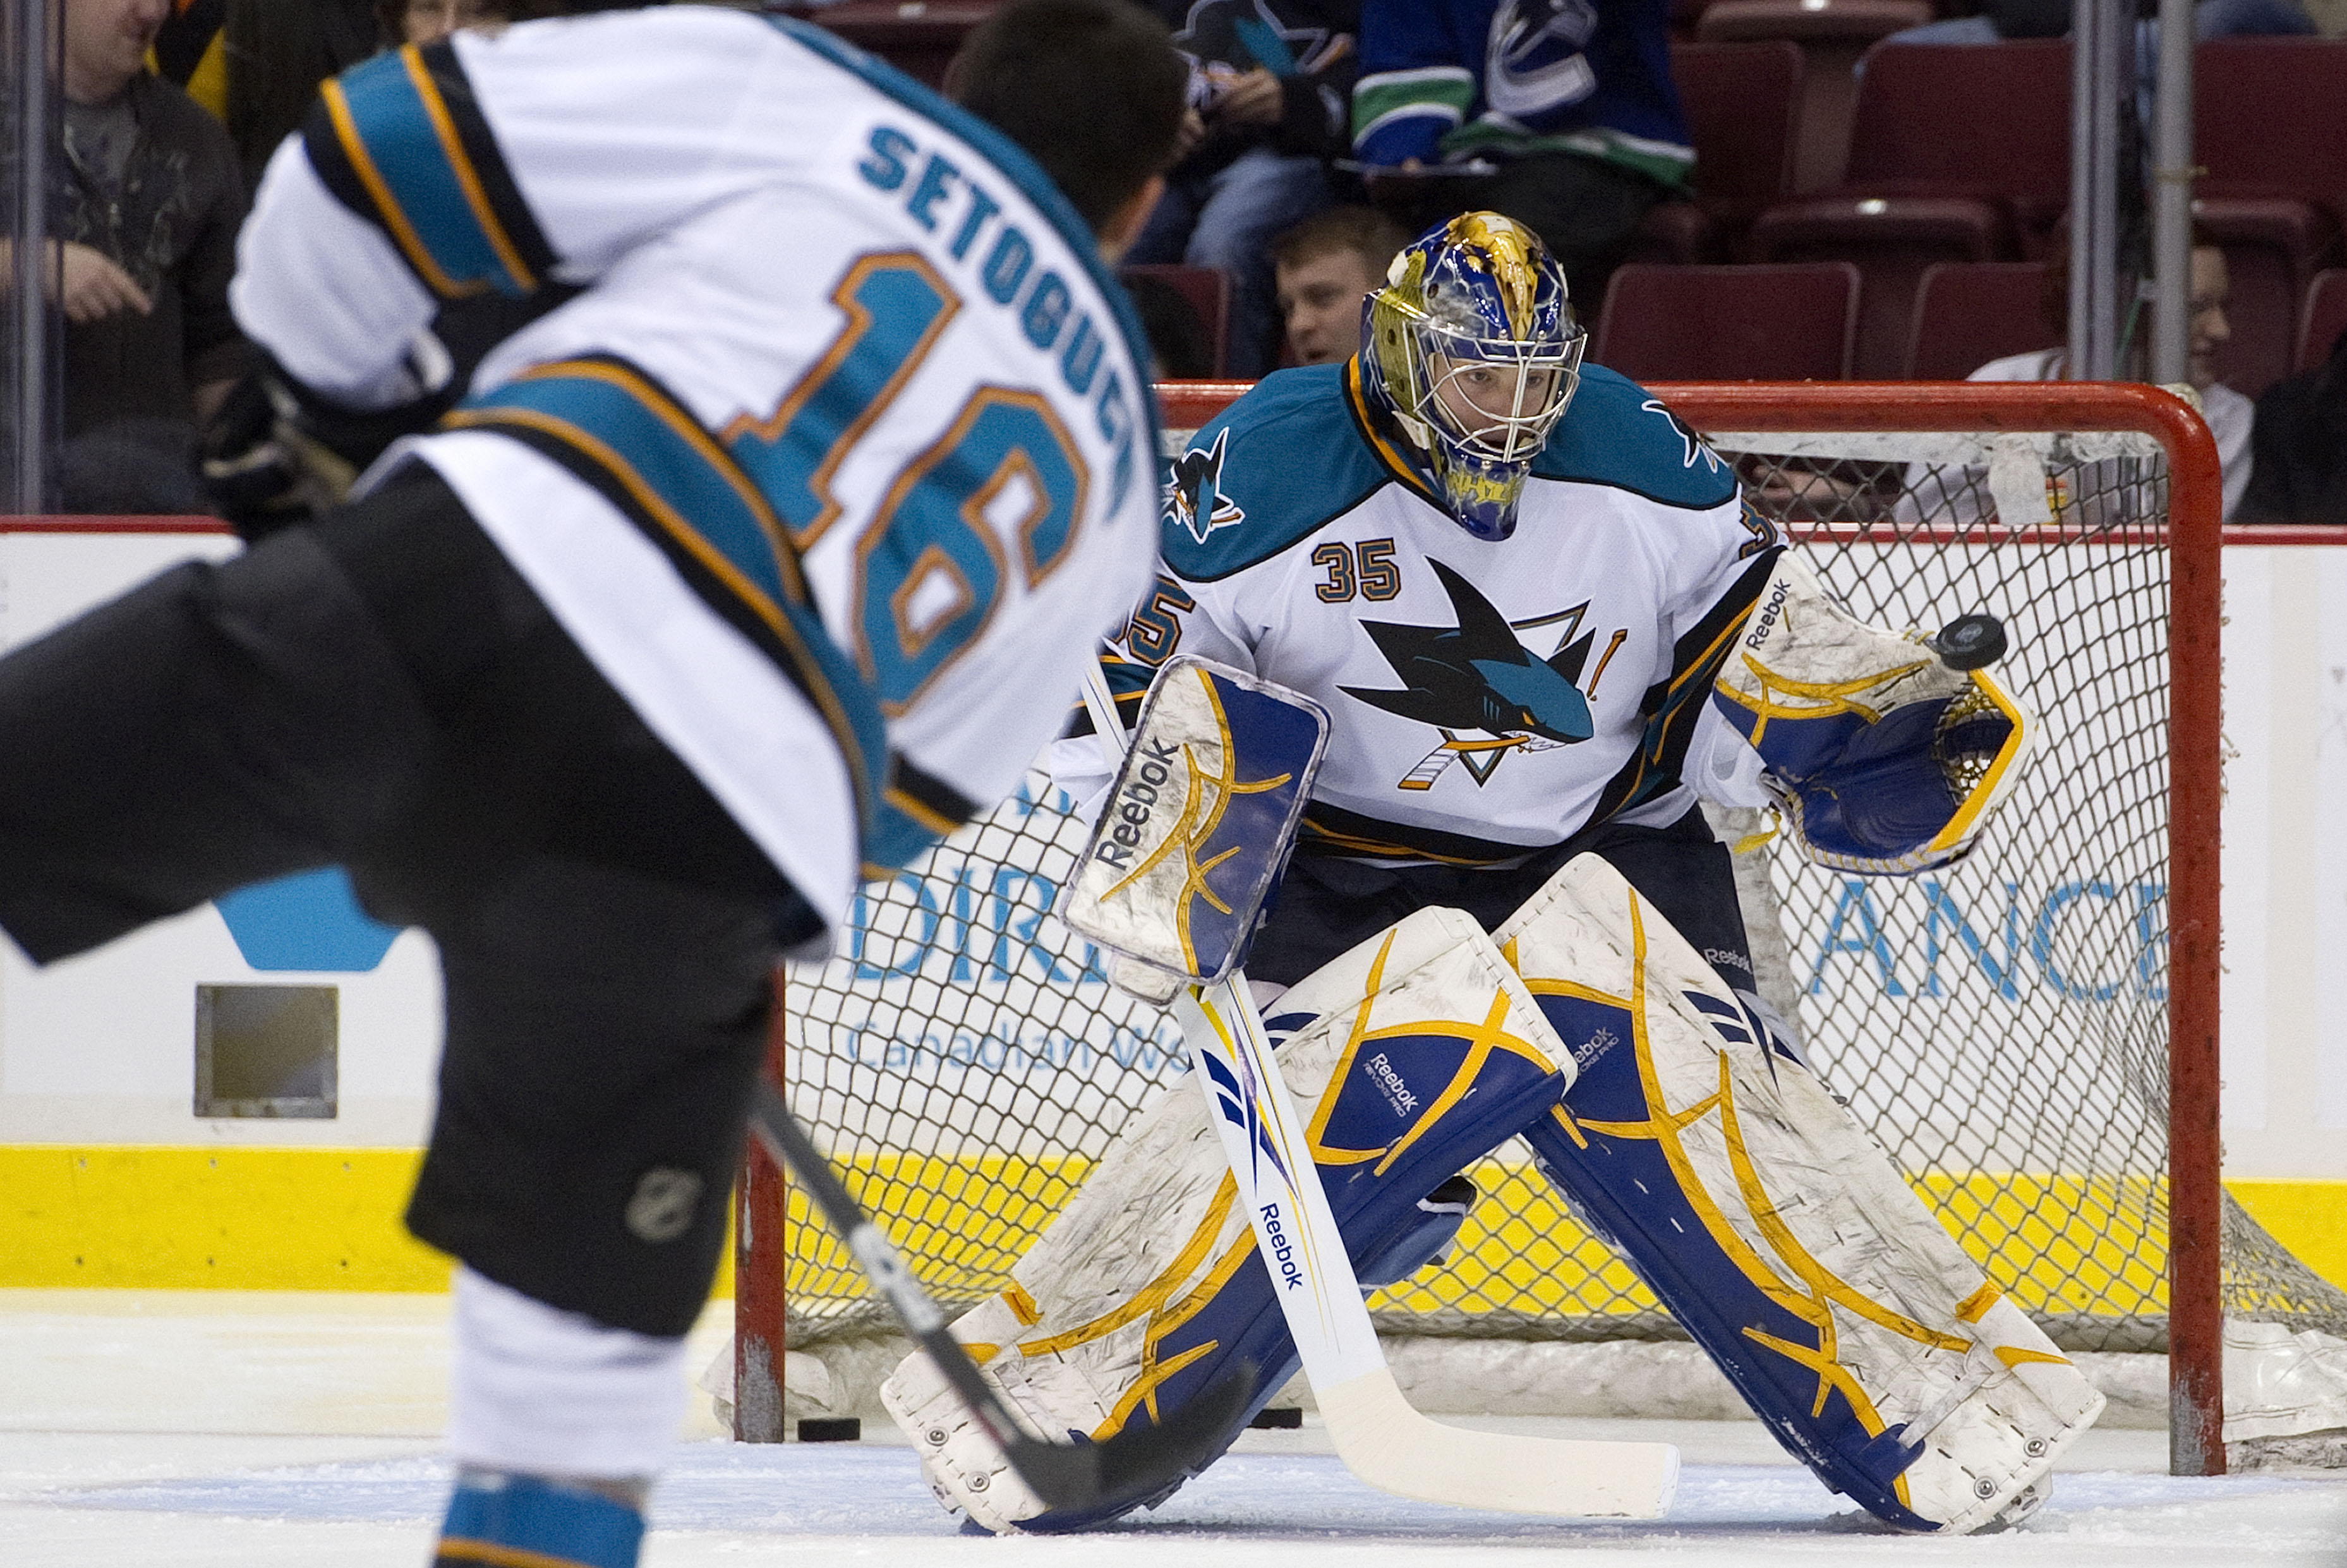 VANCOUVER, CANADA - JANUARY 20: Backup goalie Jordan White #35 of the San Jose Sharks makes a glove save on Devin Setoguchi #16 during pre game skate prior to NHL action against the Vancouver Canucks on January 20, 2011 at Rogers Arena in Vancouver, BC, C